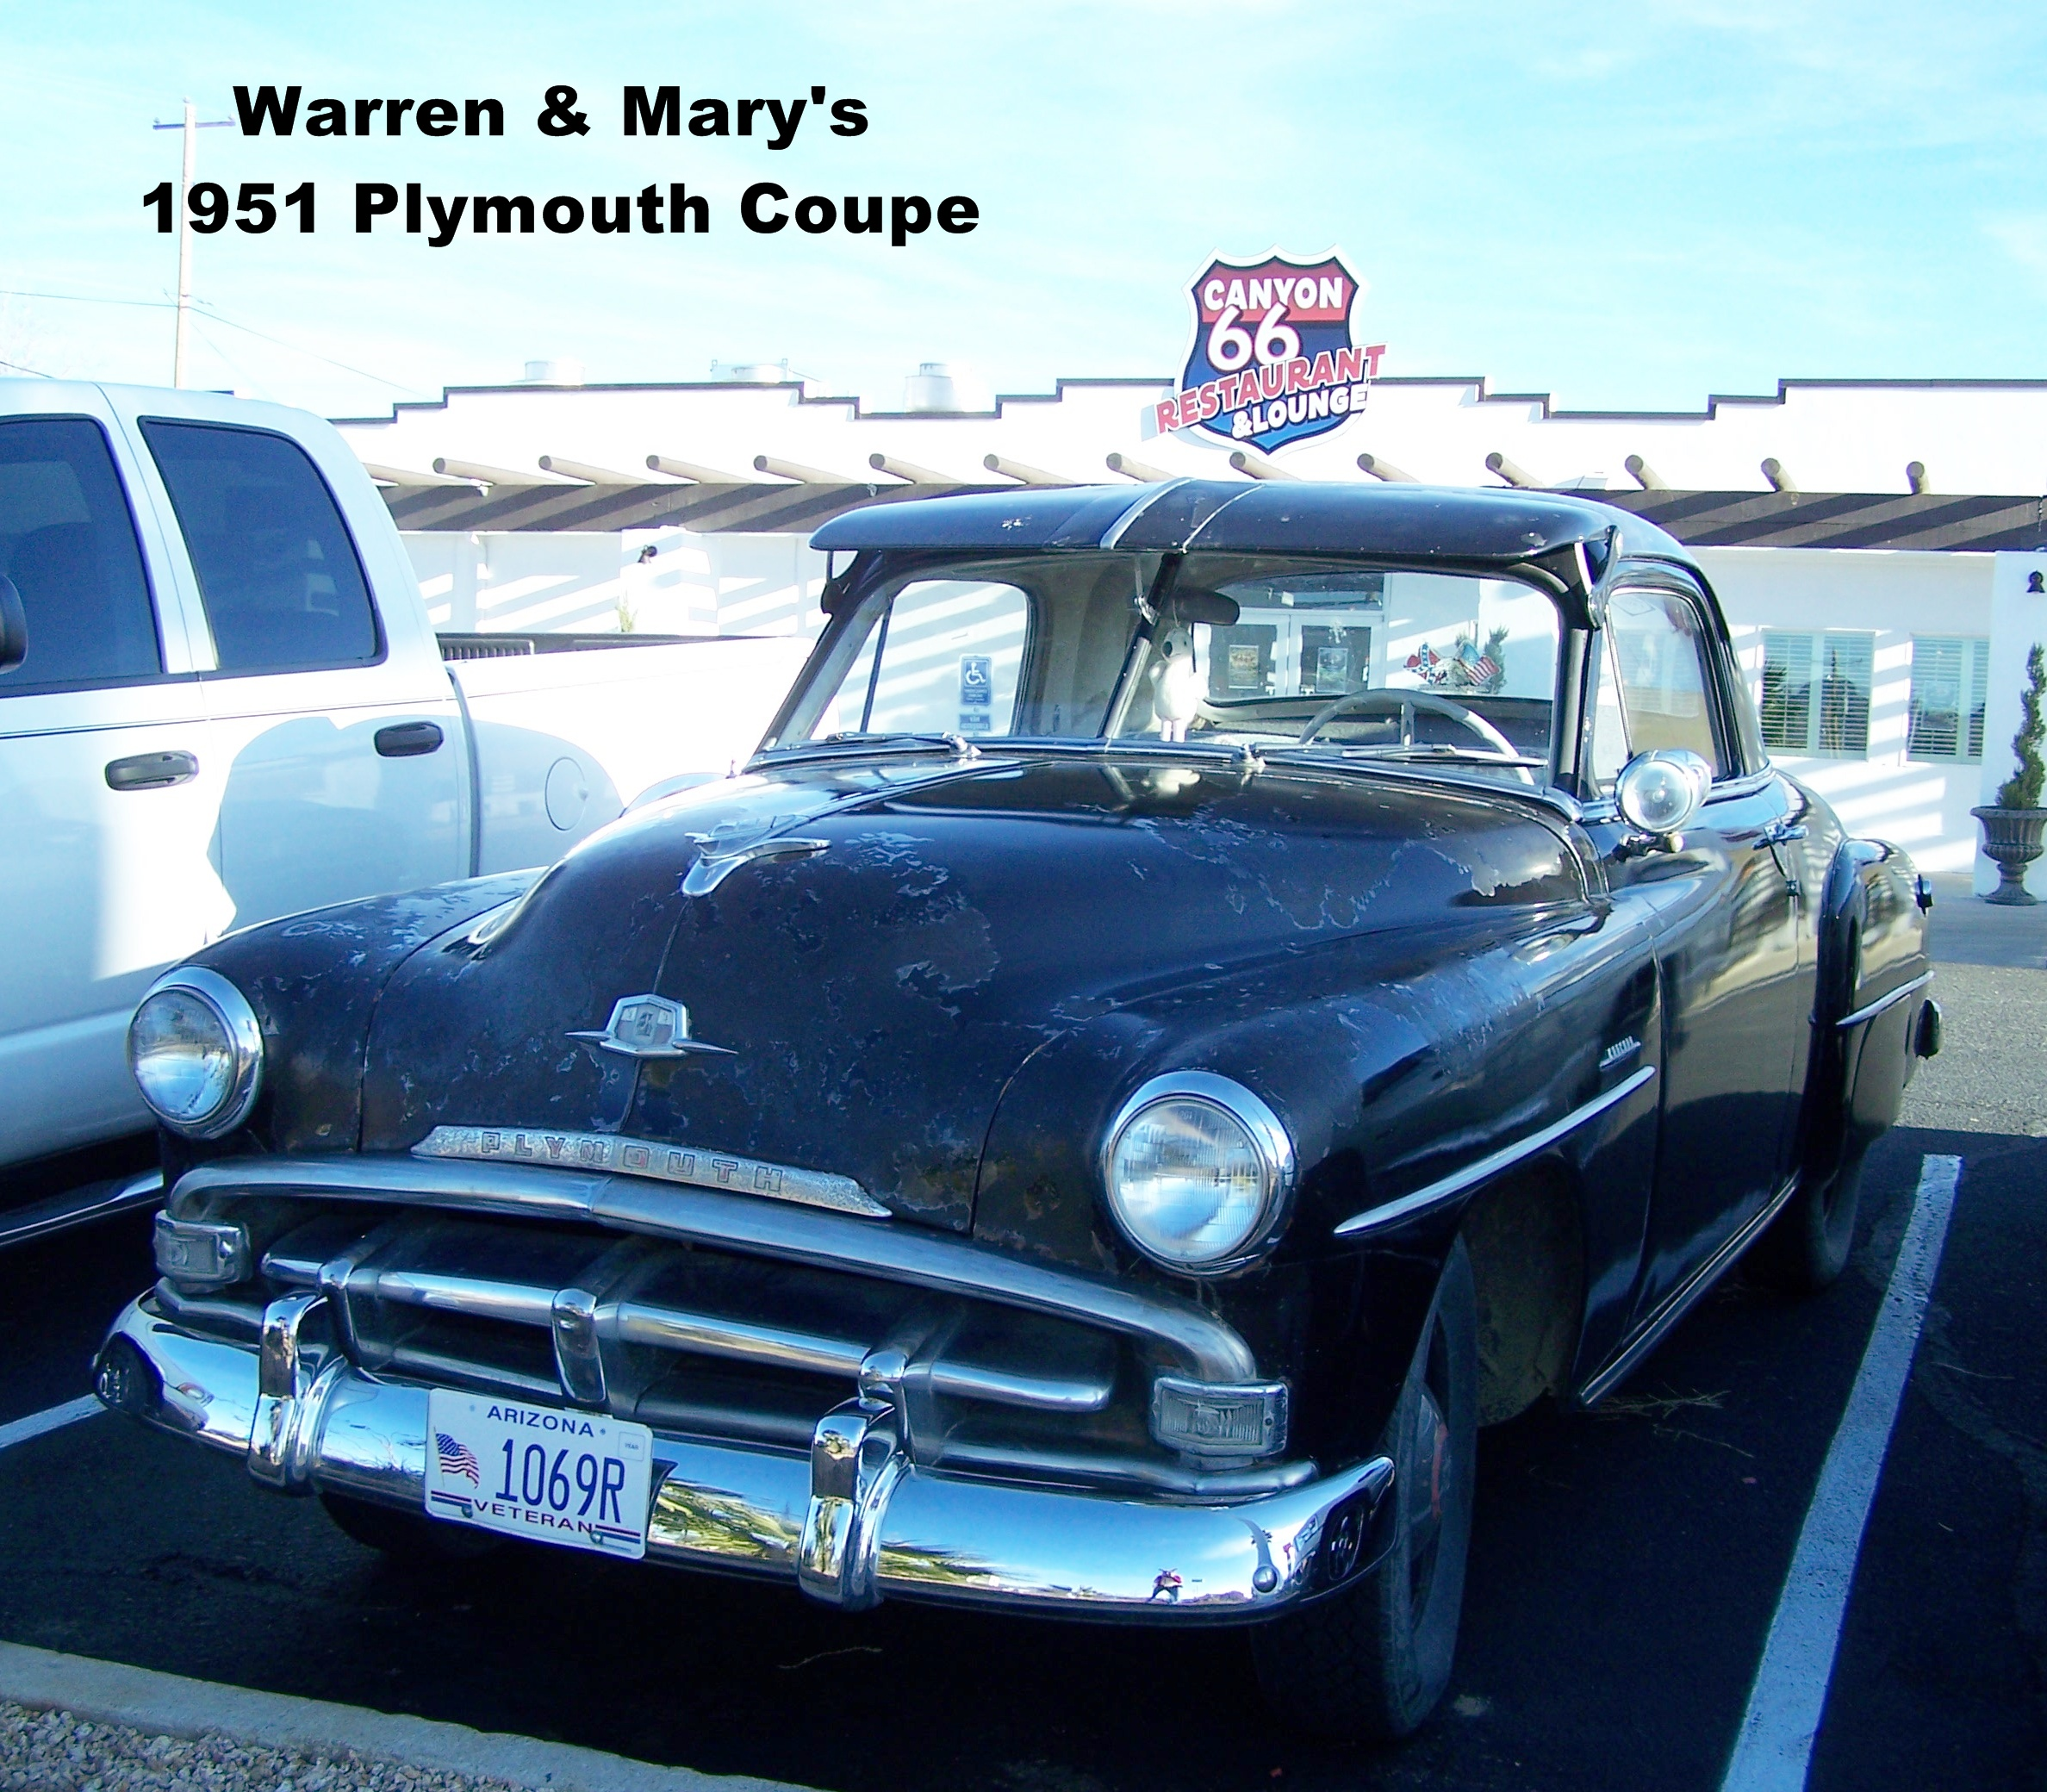 1951plymouthcoupewarrenmarybowen.jpg